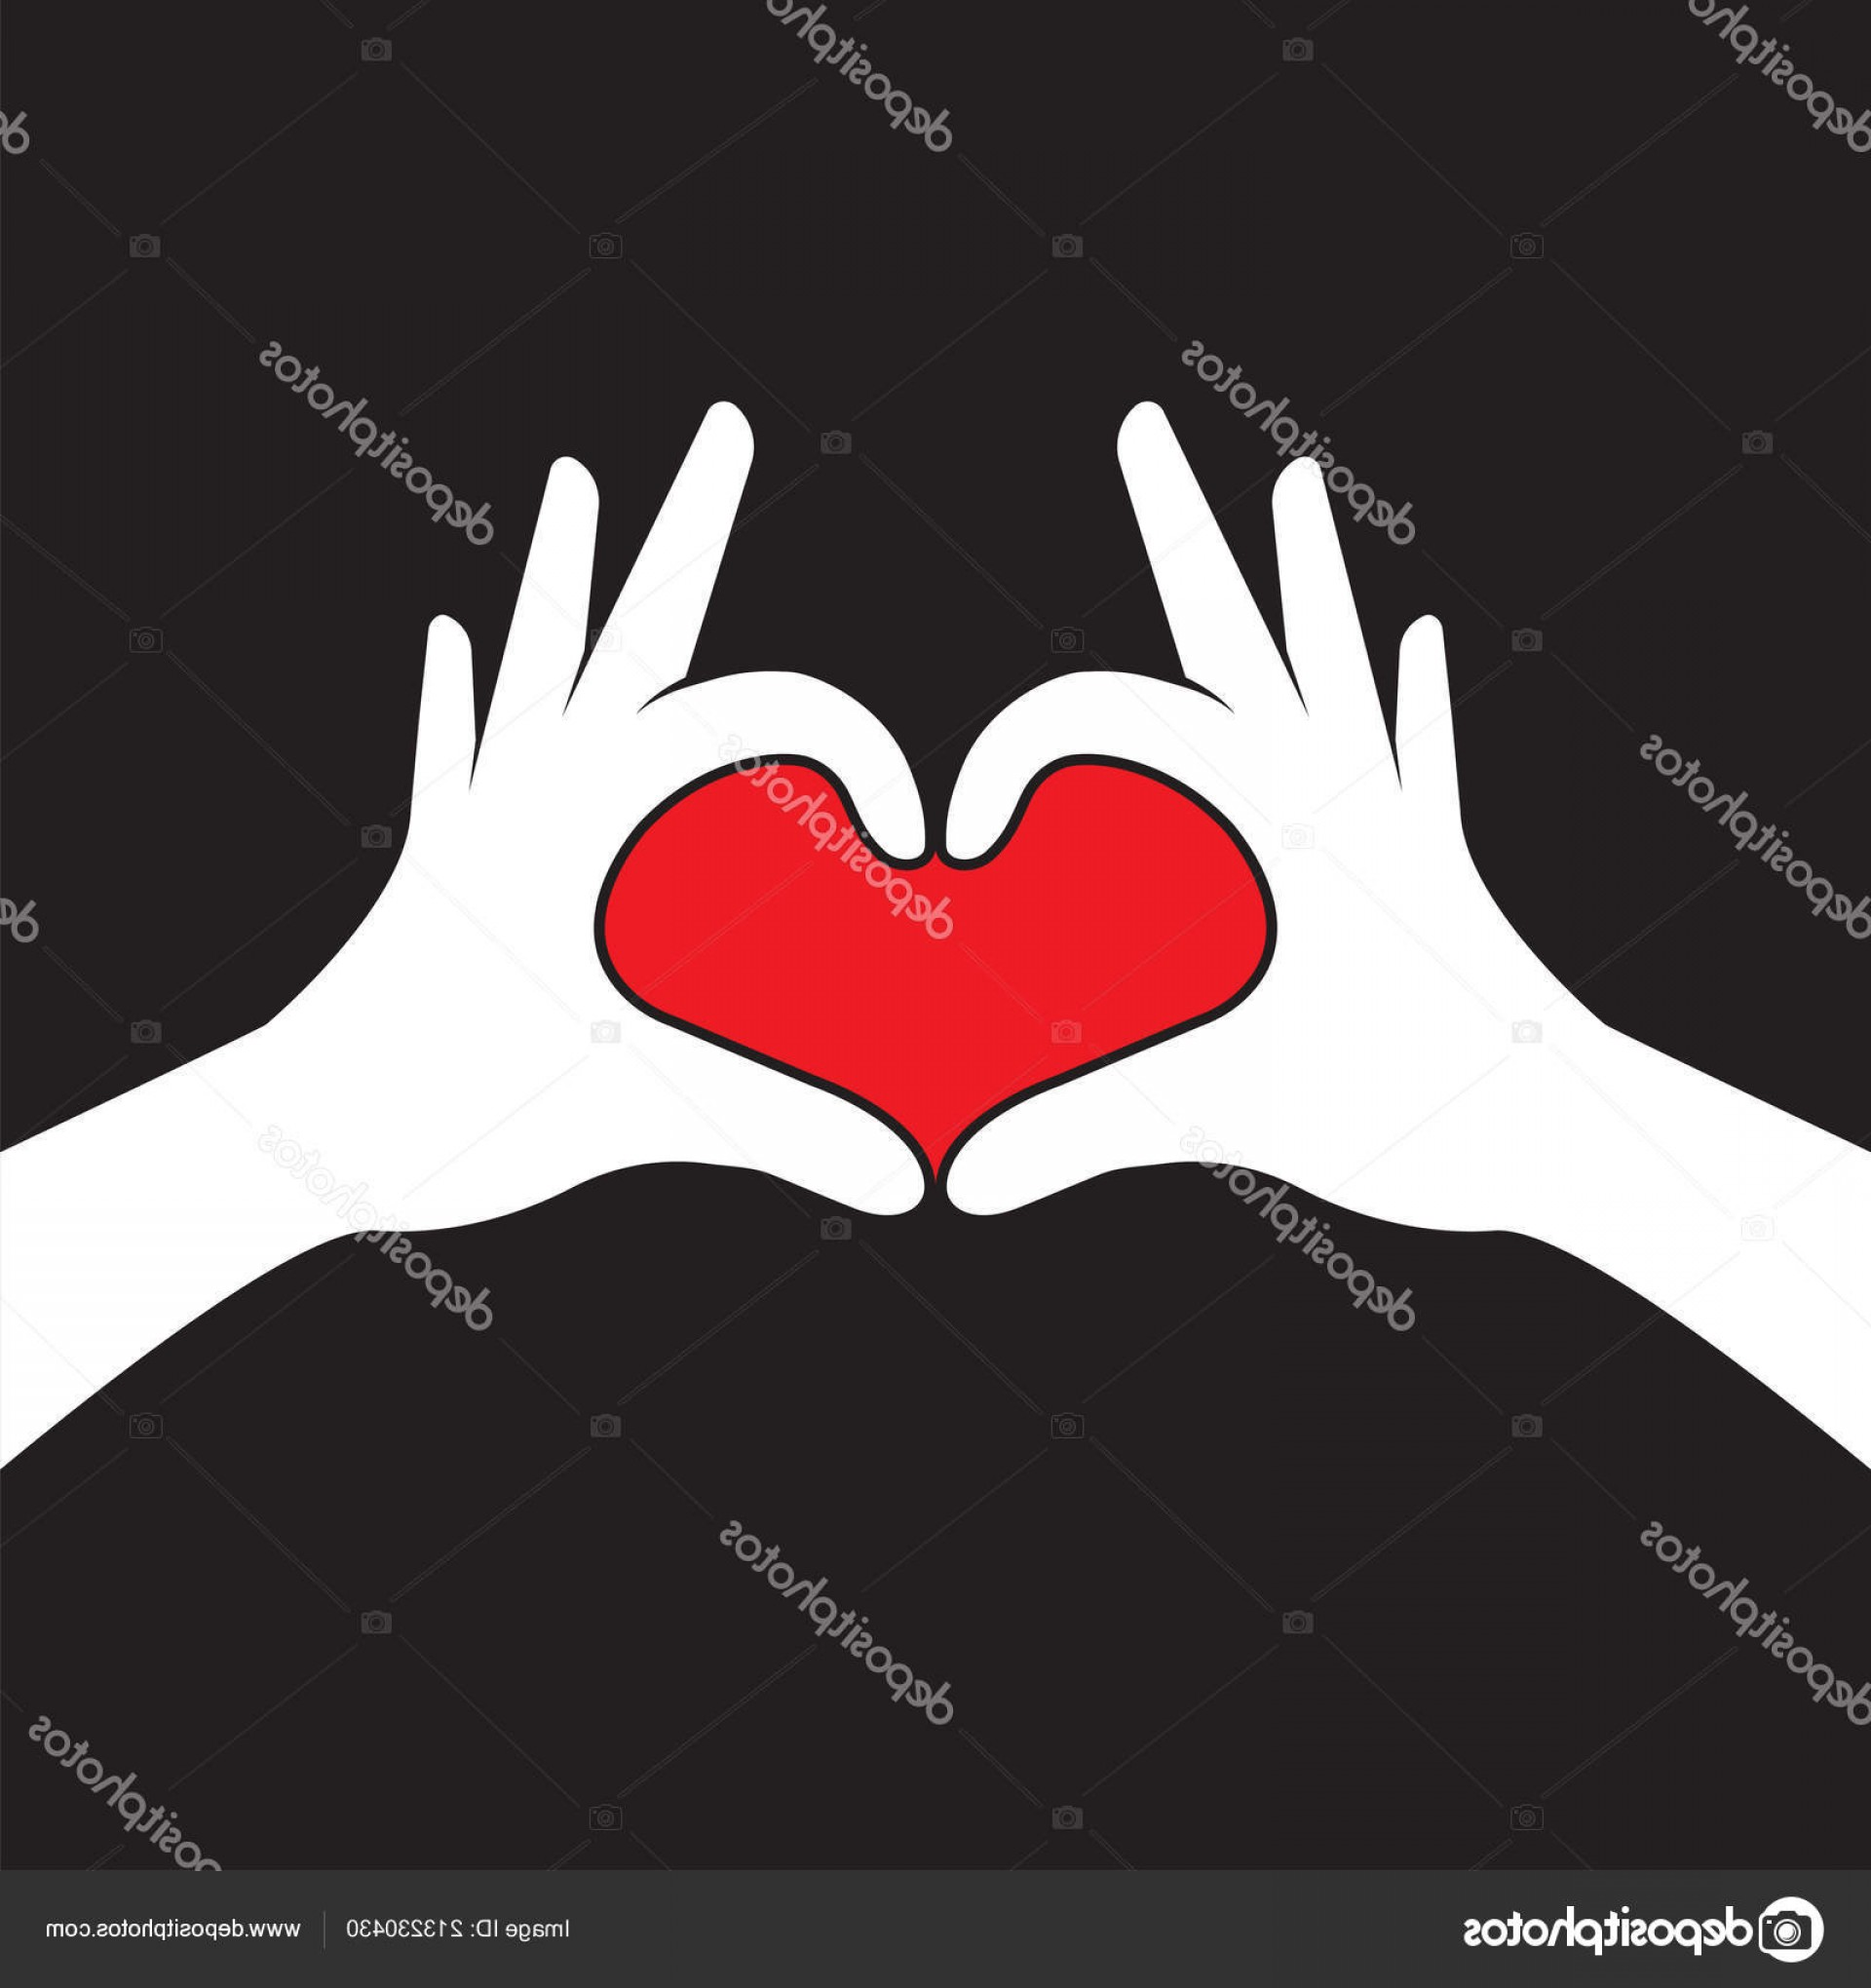 Vector Vector Heart Shaped Hands: Stock Illustration Hands Making Heart Shape Valentines